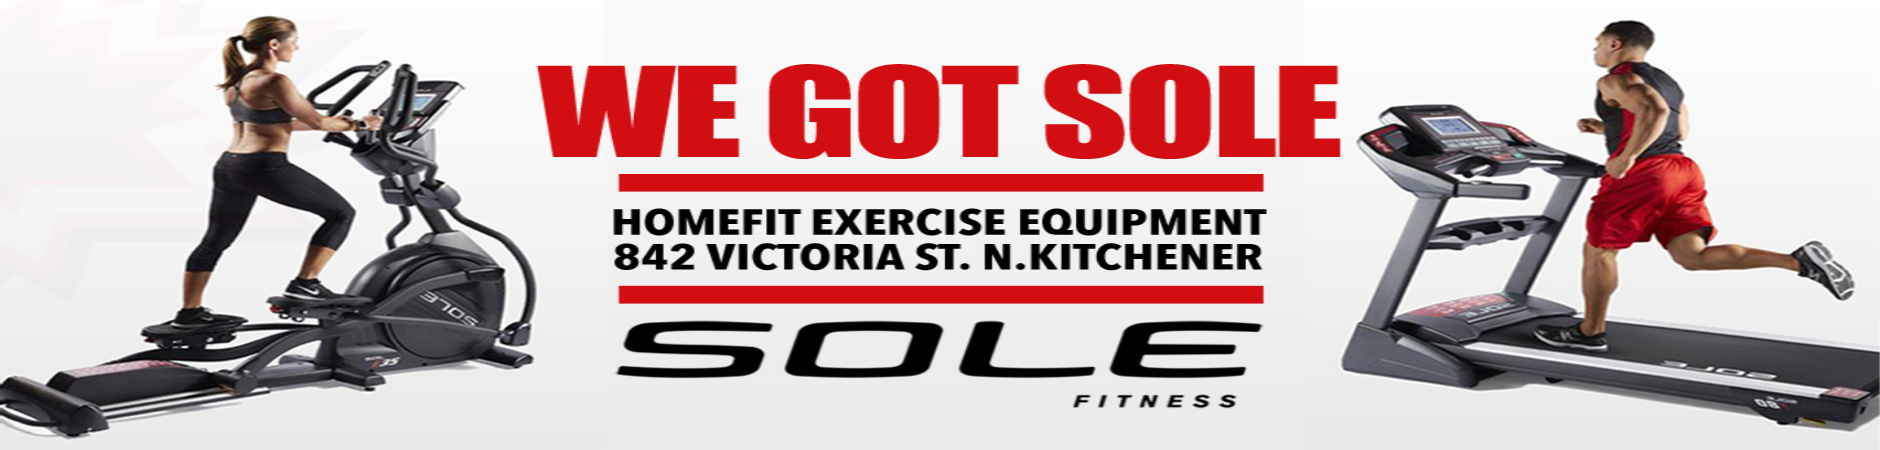 Promotion for Sole Exercise Equipment